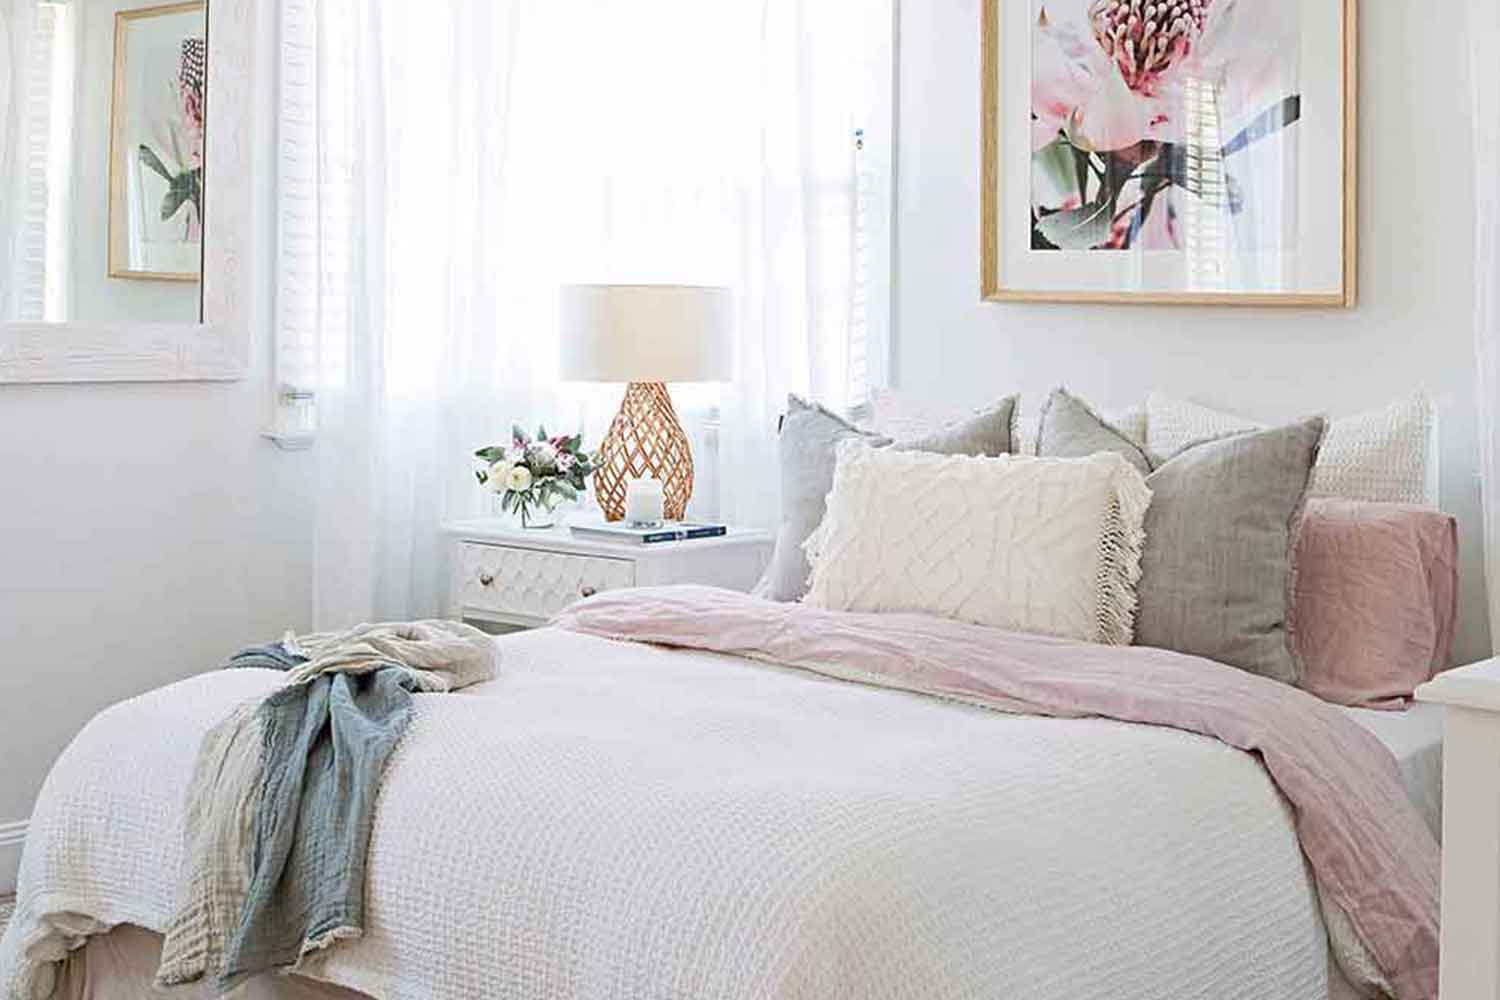 Room recipe hamptons style bedroom home beautiful - Home decor ideas images ...